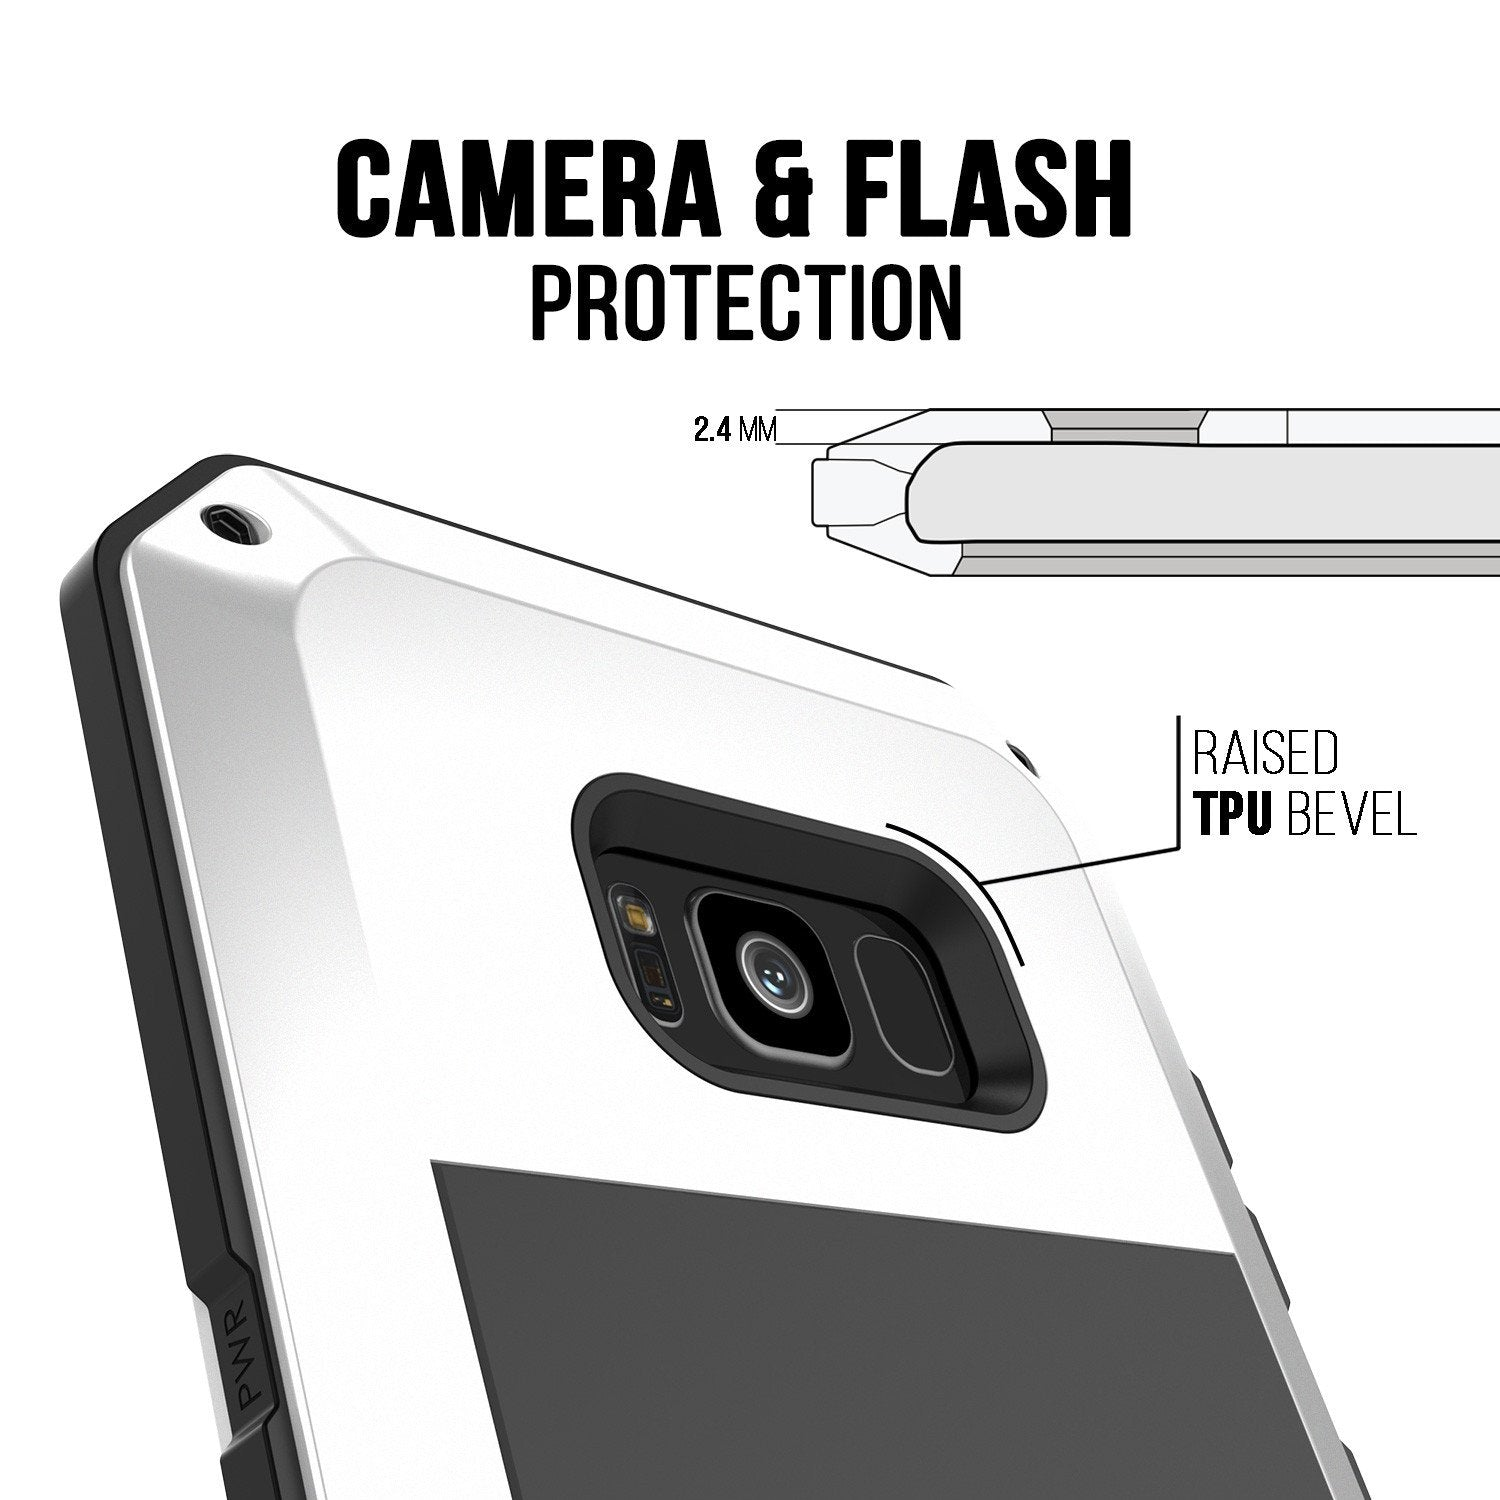 Galaxy S8 Metal Case, Heavy Duty Military Grade Rugged Armor Cover [shock proof] W/ Prime Drop Protection [WHITE]